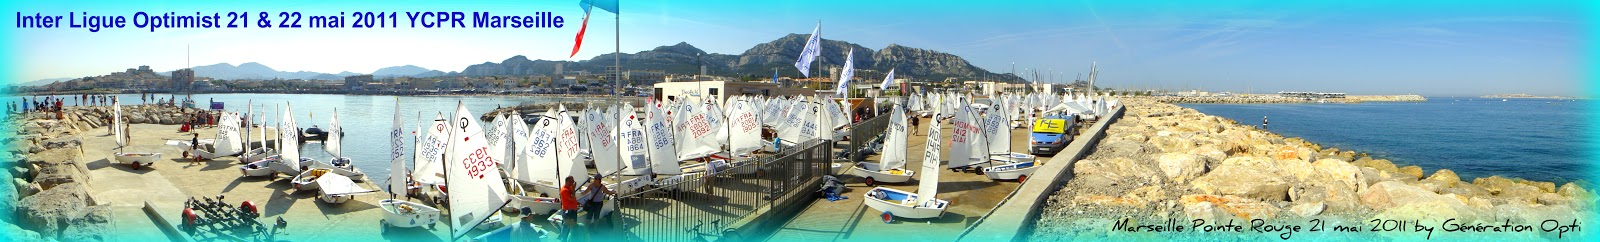 Inter ligue optimist YCPR 2011 generation-opti